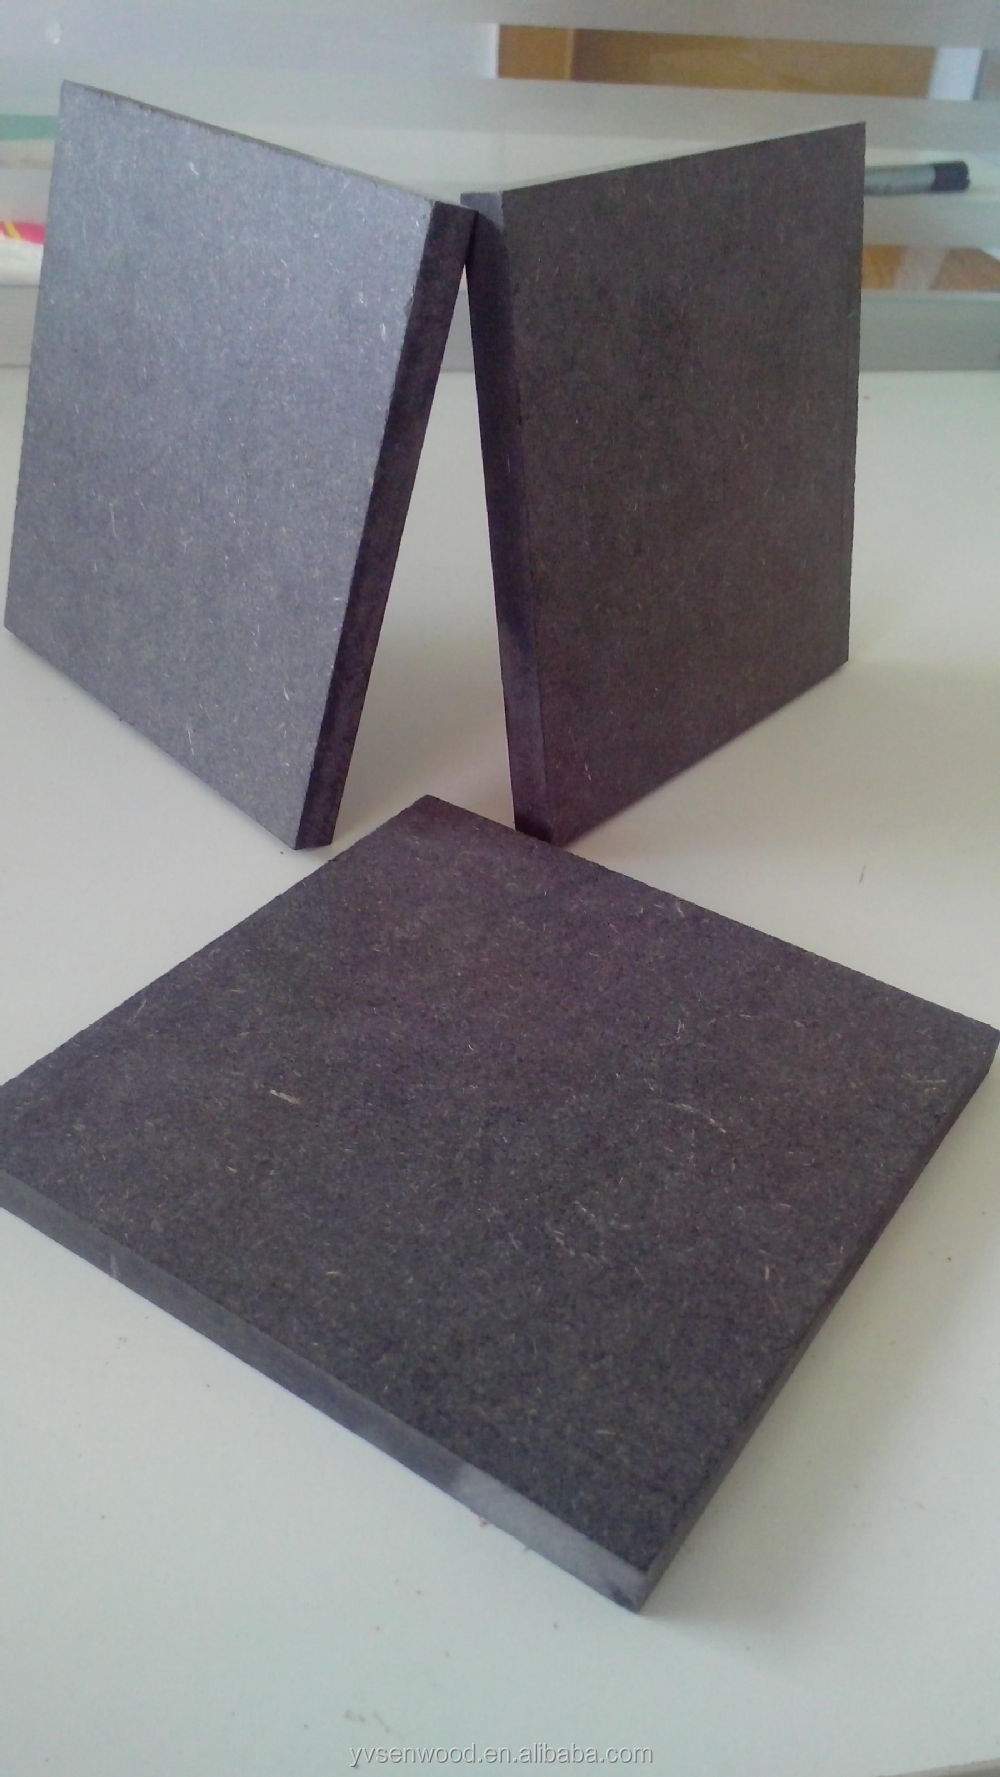 Black Mdfred Mdf 18mm Buy Black Mdf 18mmBlack Mdf